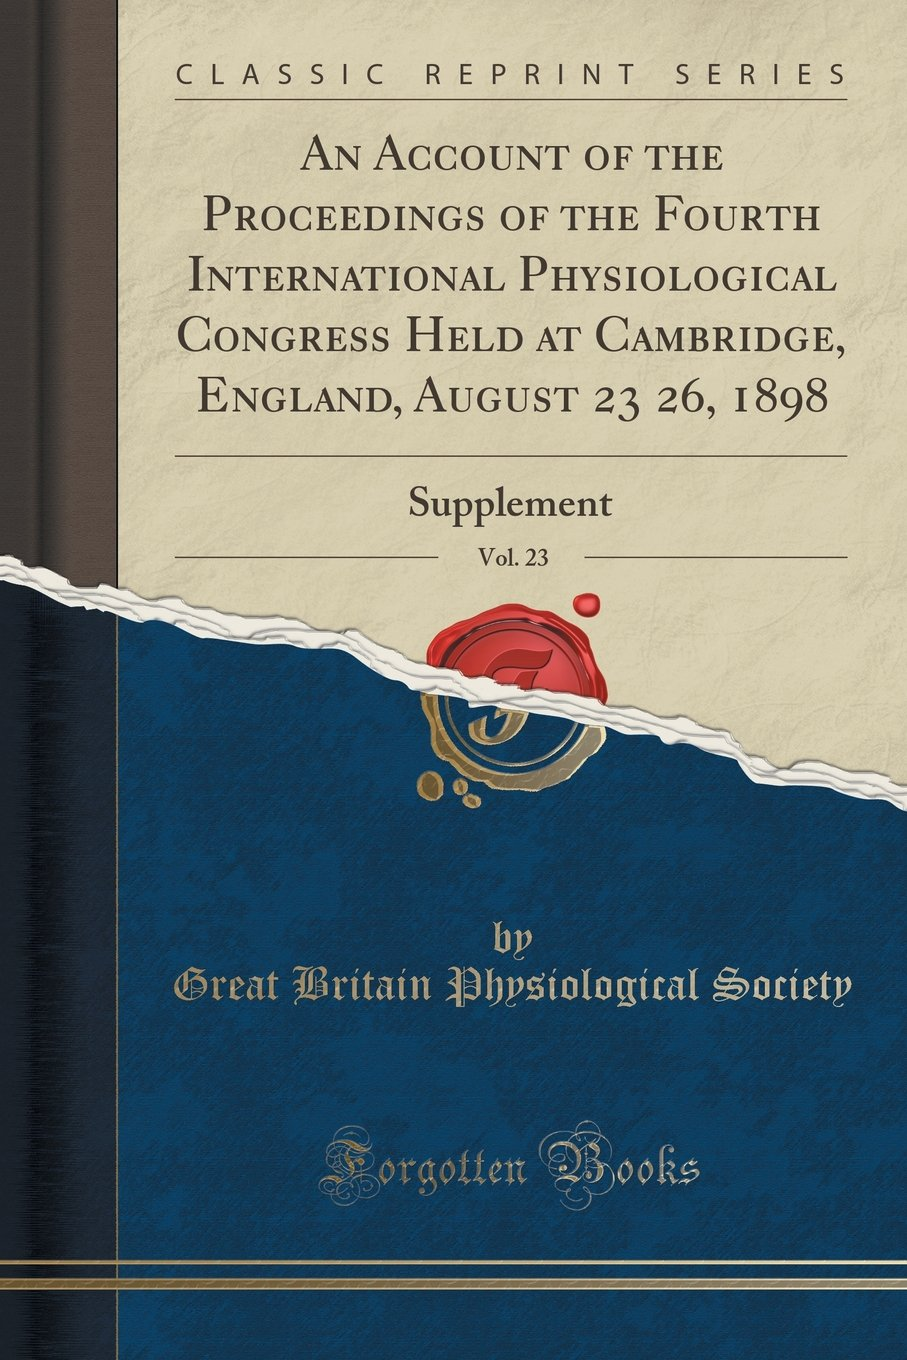 An Account of the Proceedings of the Fourth International Physiological Congress Held at Cambridge, England, August 23 26, 1898, Vol. 23: Supplement (Classic Reprint) PDF